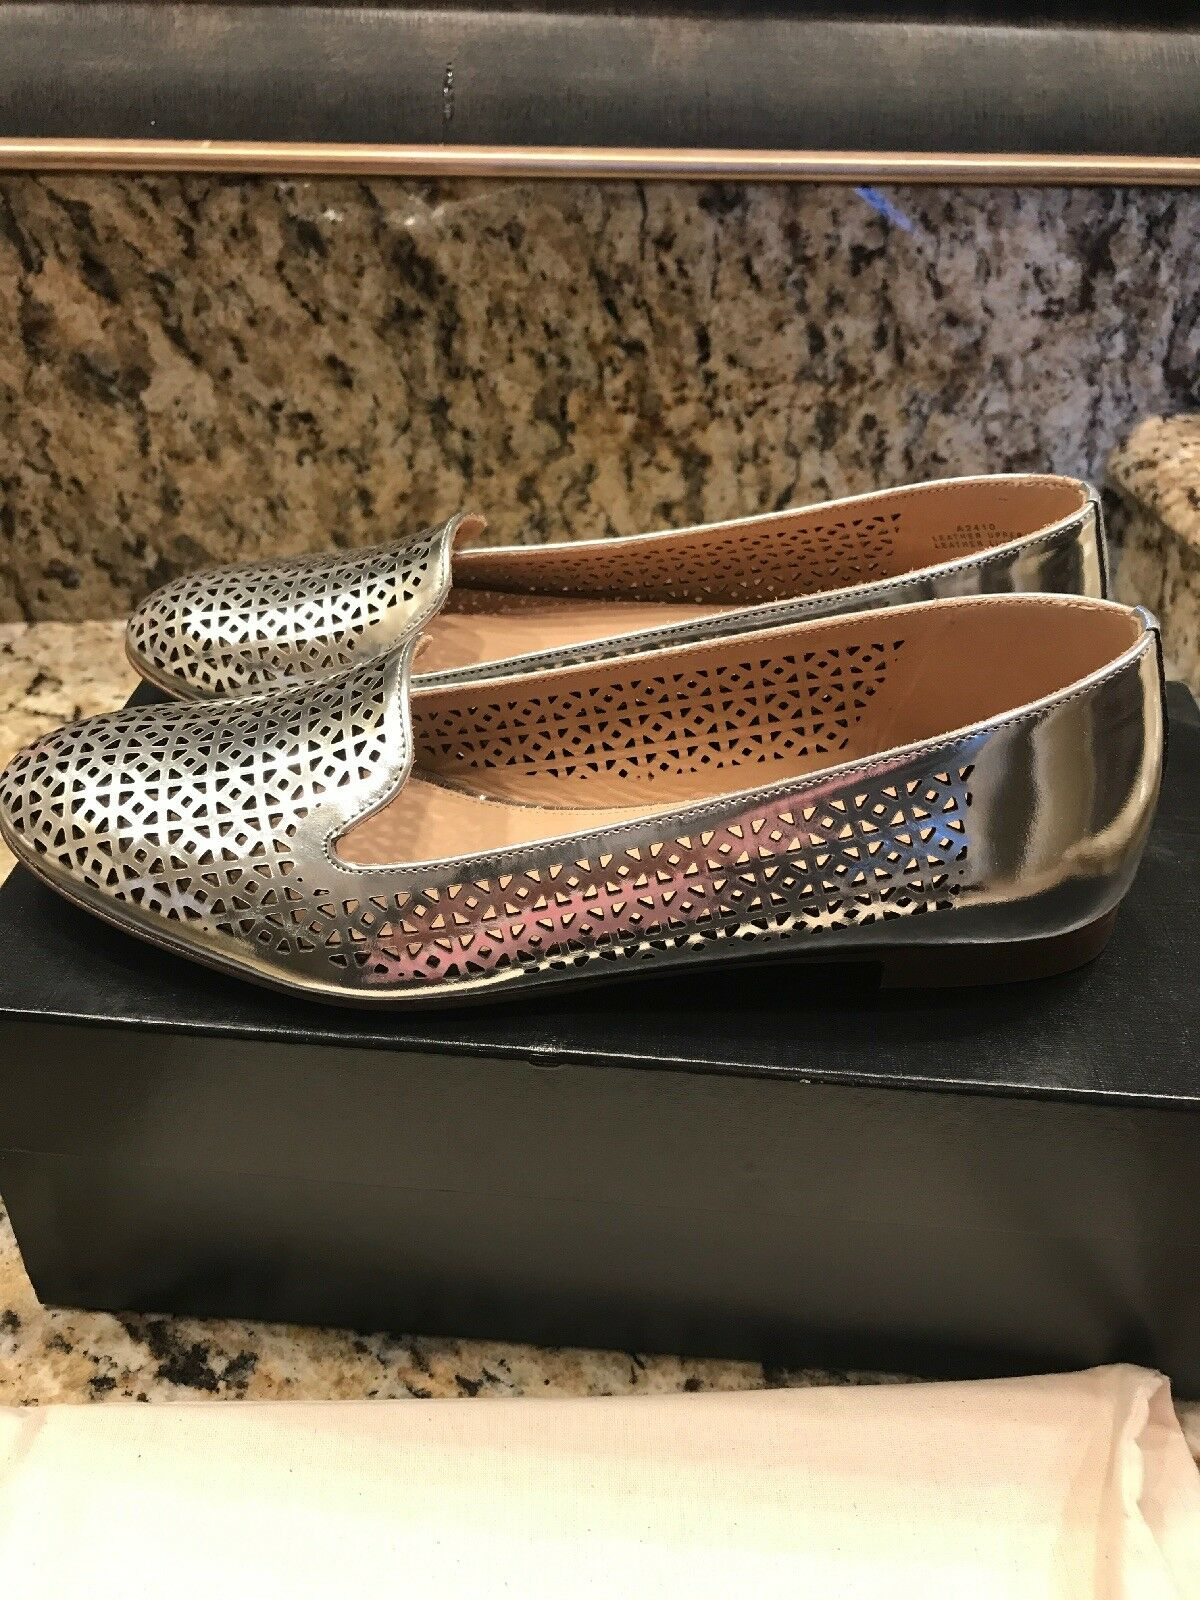 NEW NEW NEW JCrew Cleo Perforated Mirror Metallic Flats 6.5 SILVER b964af